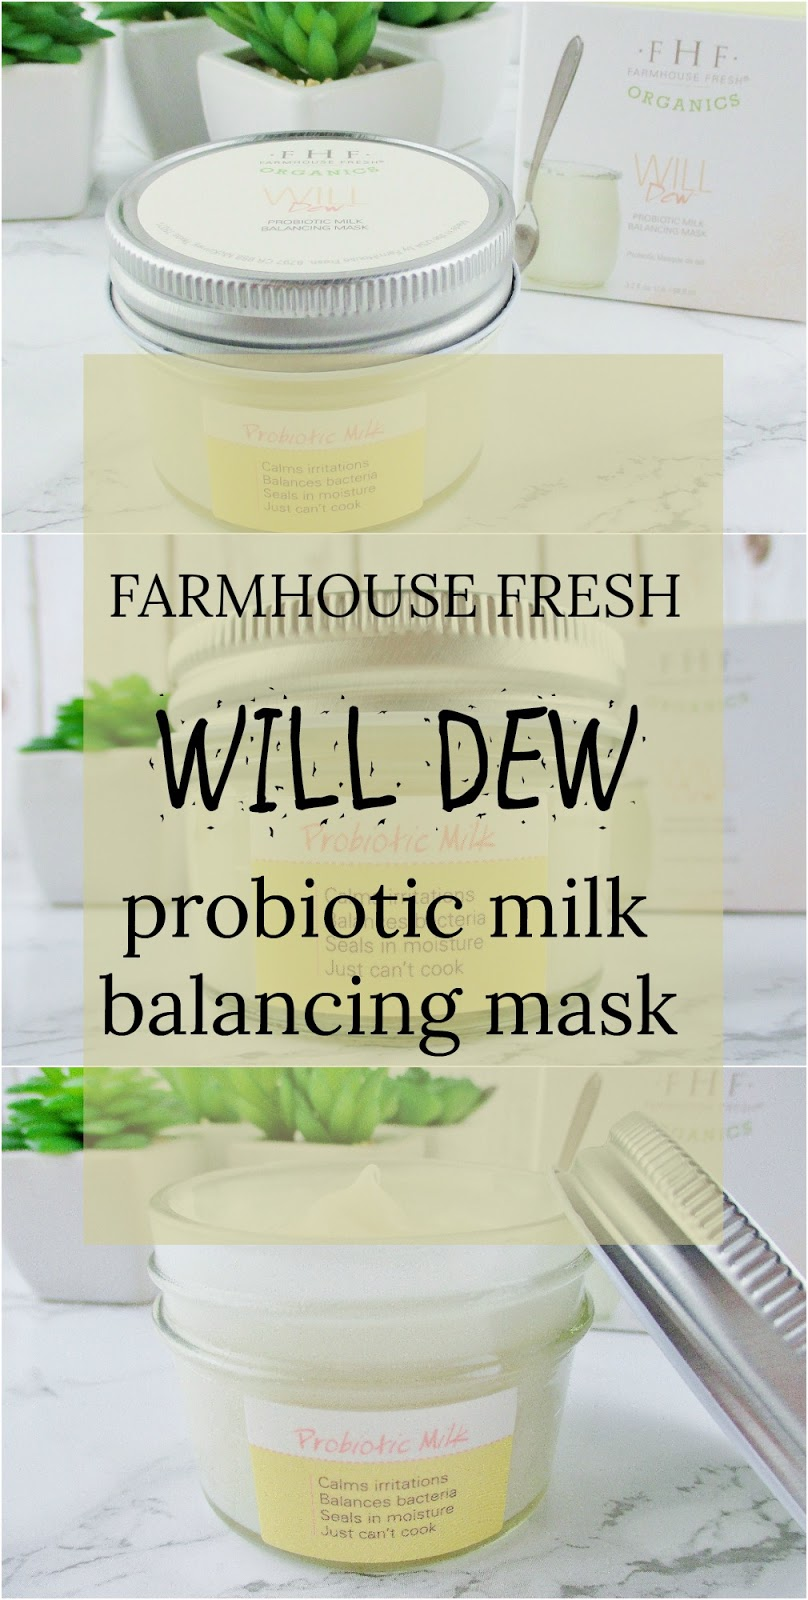 farmhouse-fresh-organics-will-dew-probiotic-milk-balancing-mask-review